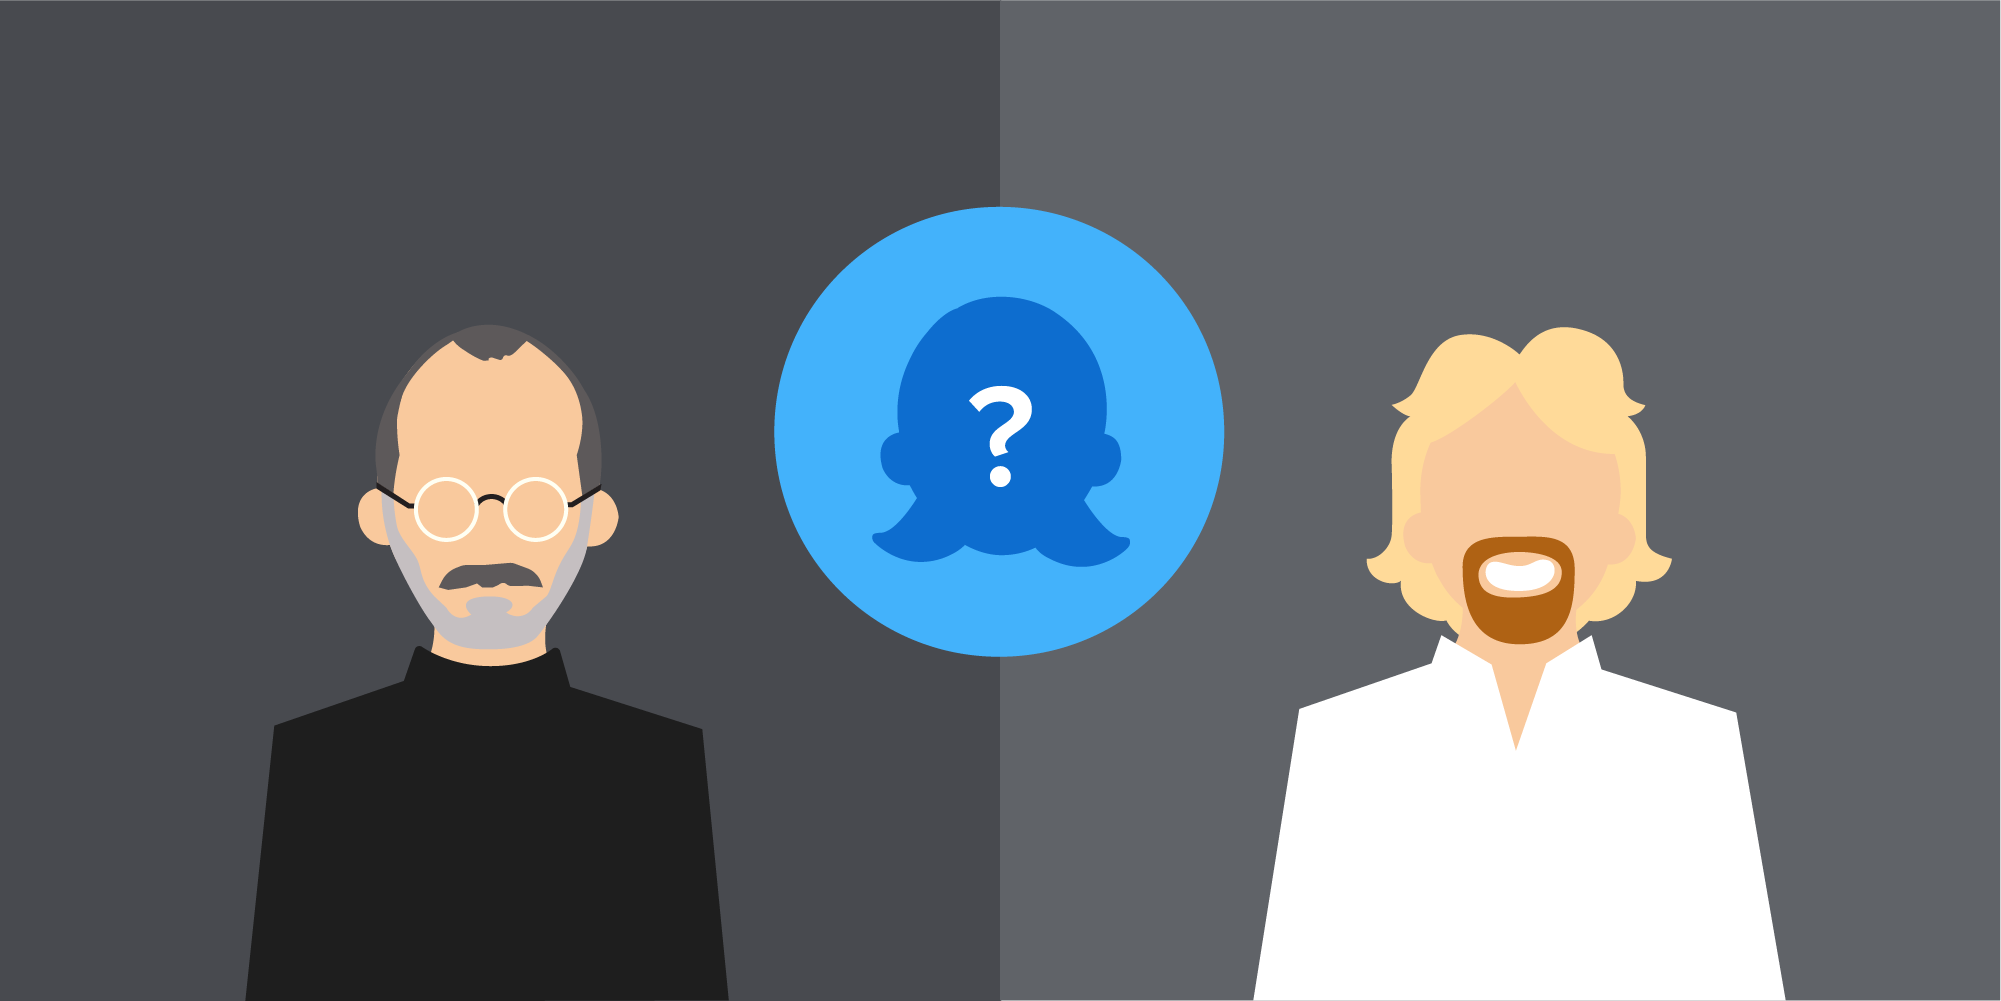 Steve Jobs or Richard Branson Illustration